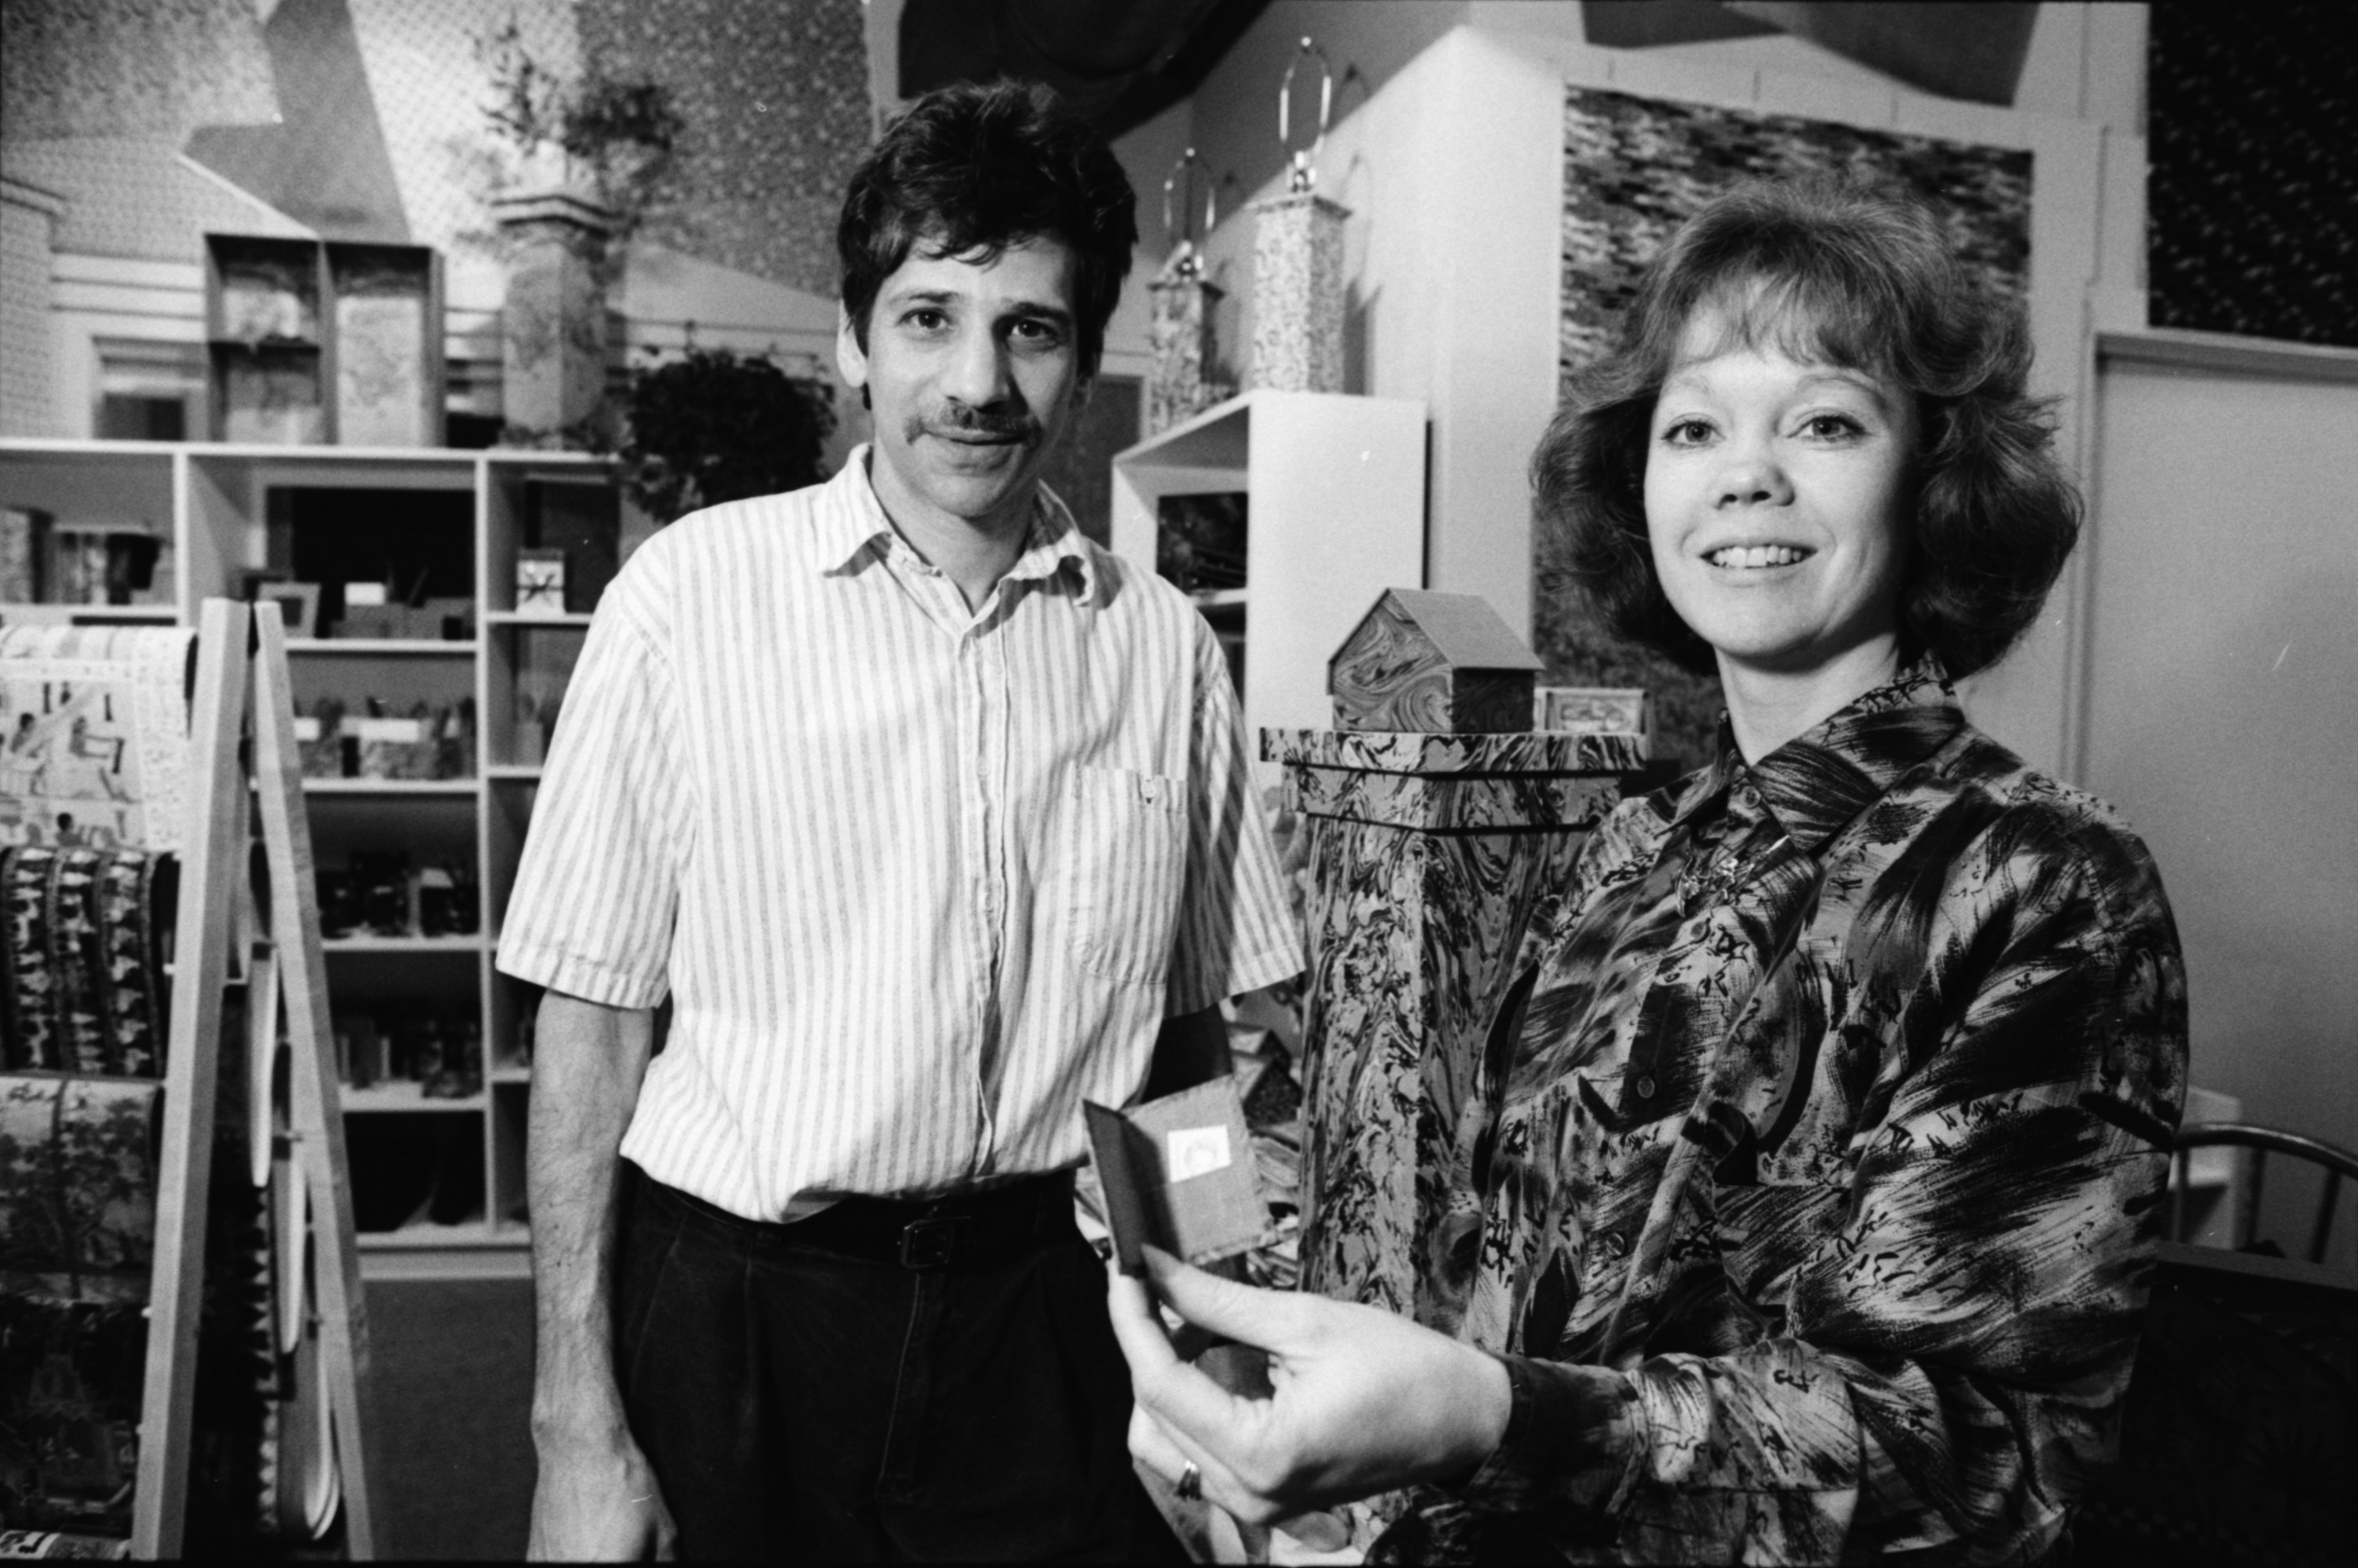 Tom and Cindy Hollander at Hollander's in Kerrytown, April 1992 image